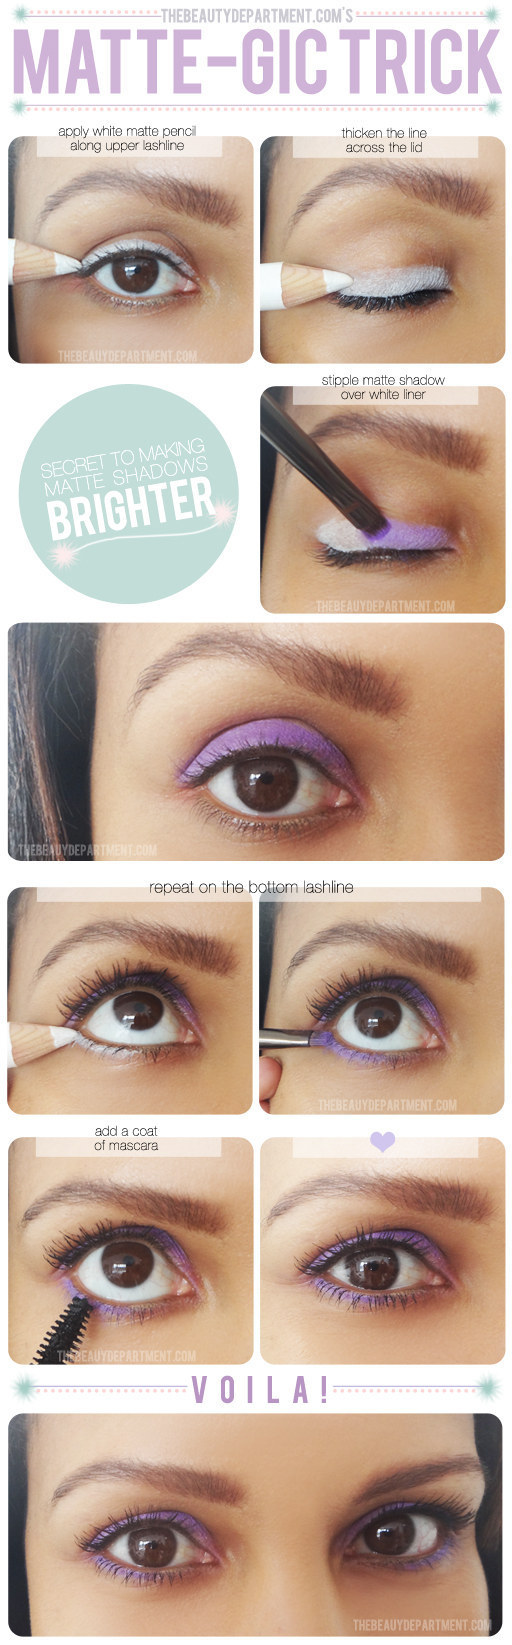 Eye makeup application diagrams free download wiring diagrams 19 eyeshadow basics everyone should know if youre looking to make colors seriously stand out apply white liner before you apply eyeshadow at makeup ccuart Choice Image